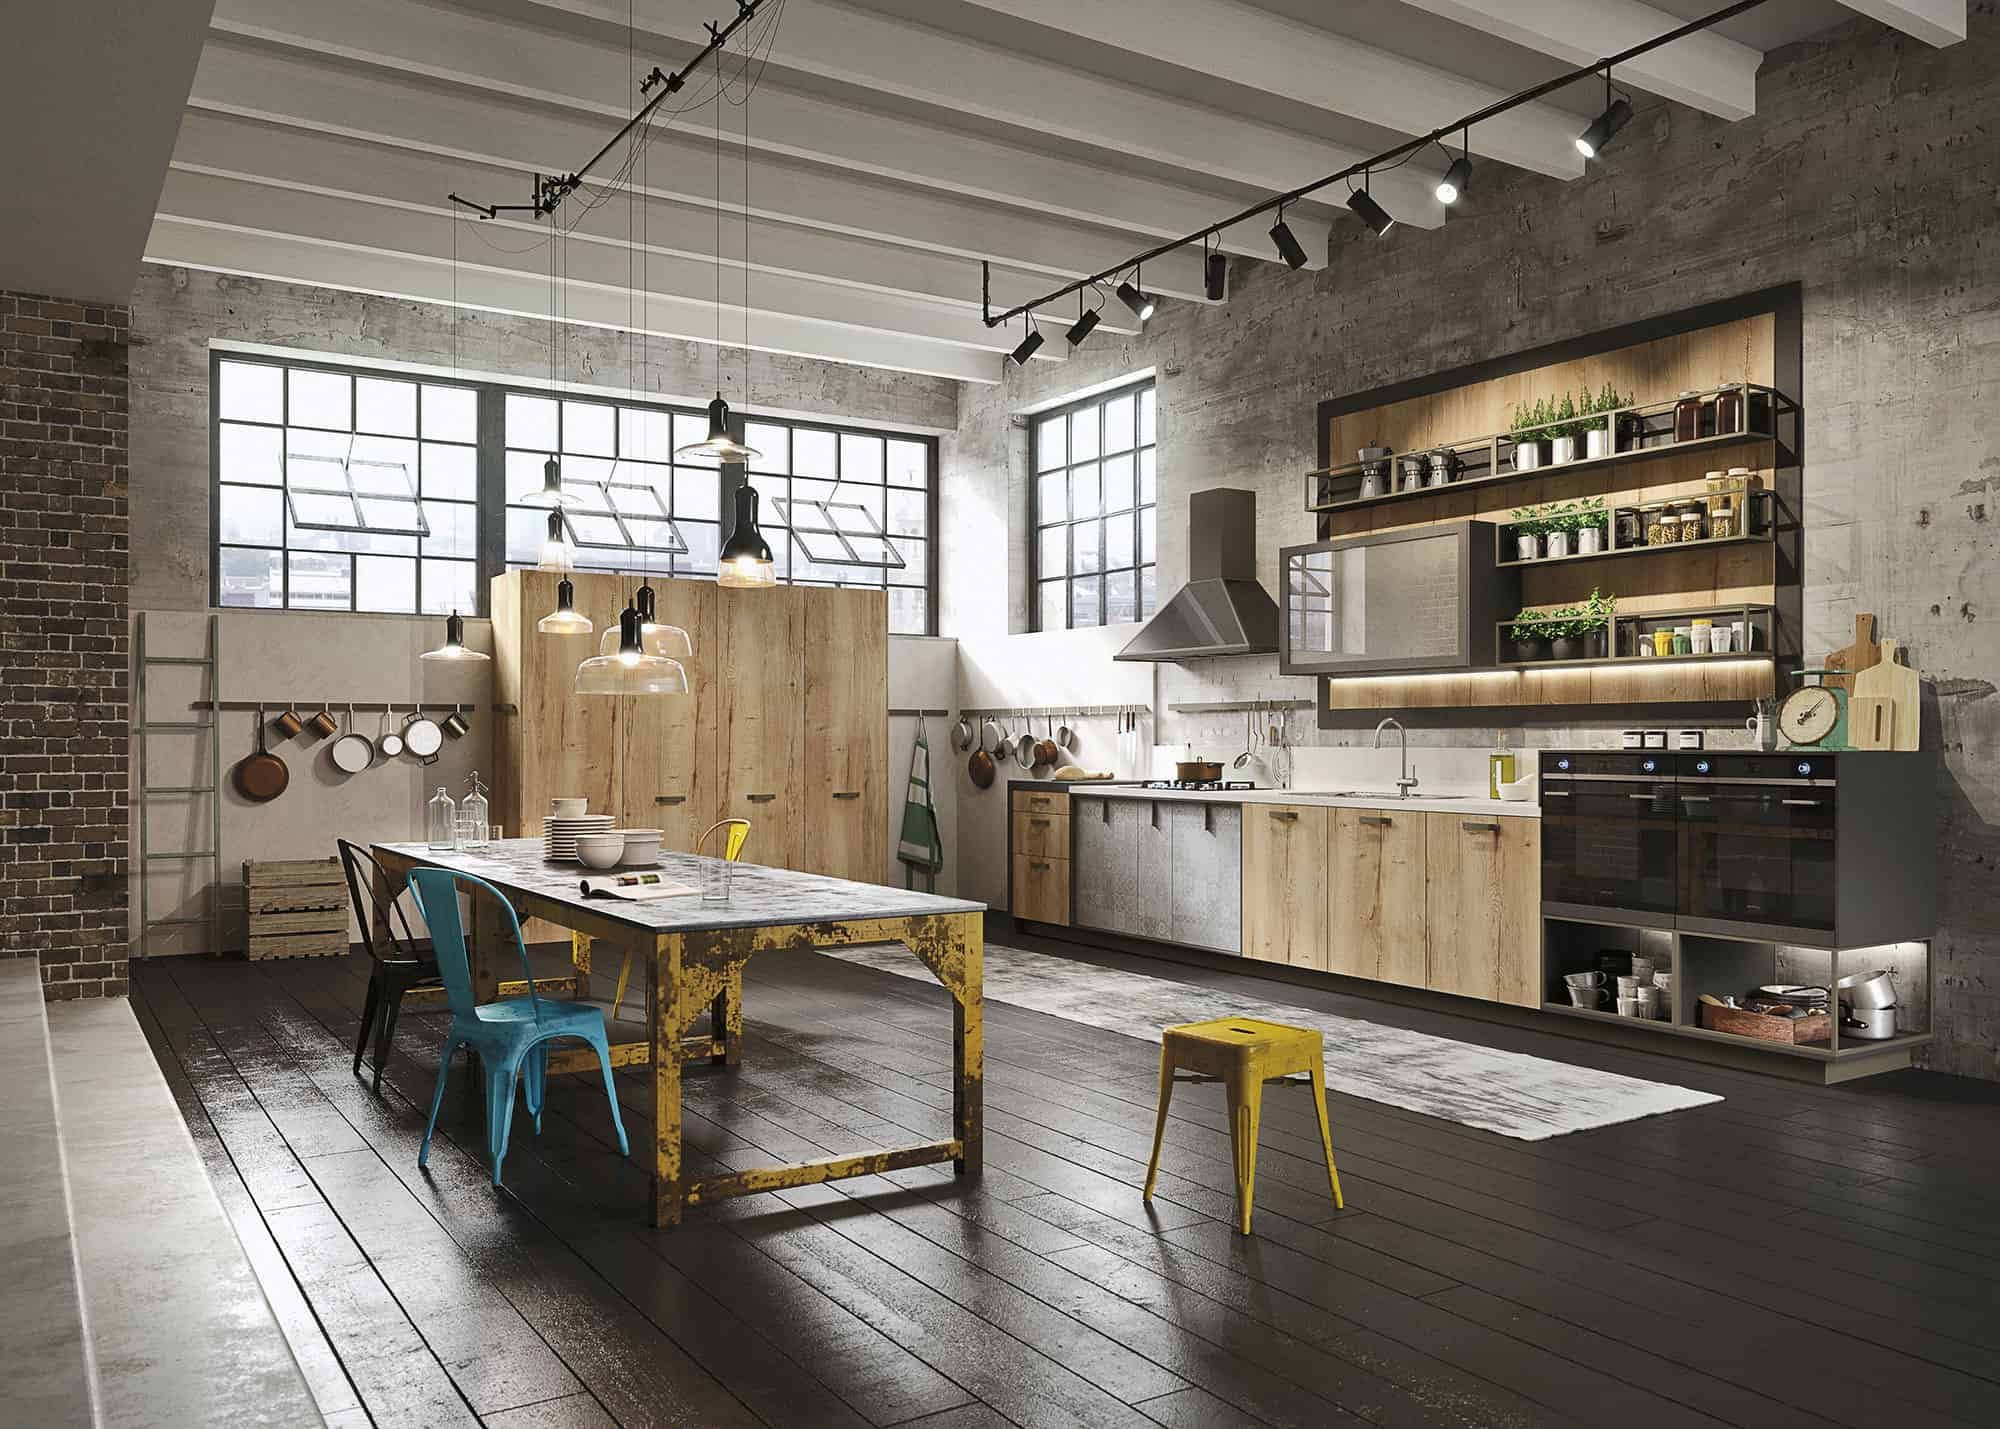 Kitchen Design for Lofts: 3 Urban Ideas from Snaidero